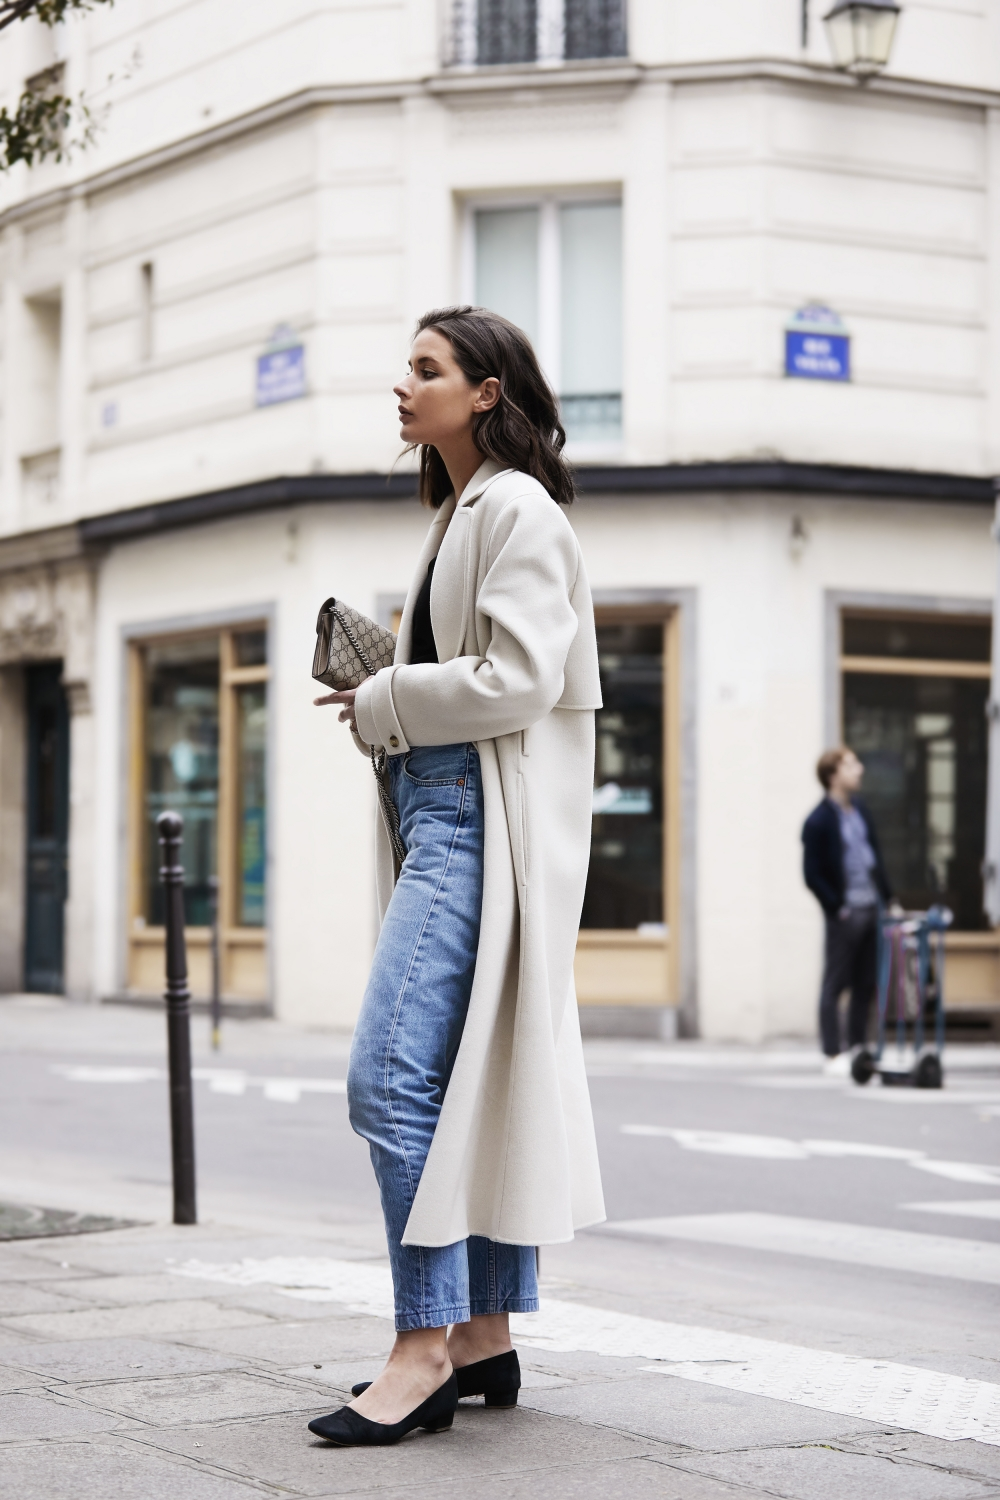 Cream Coat | Blue Jeans | Paris | Style | Outfit | HarperandHarley